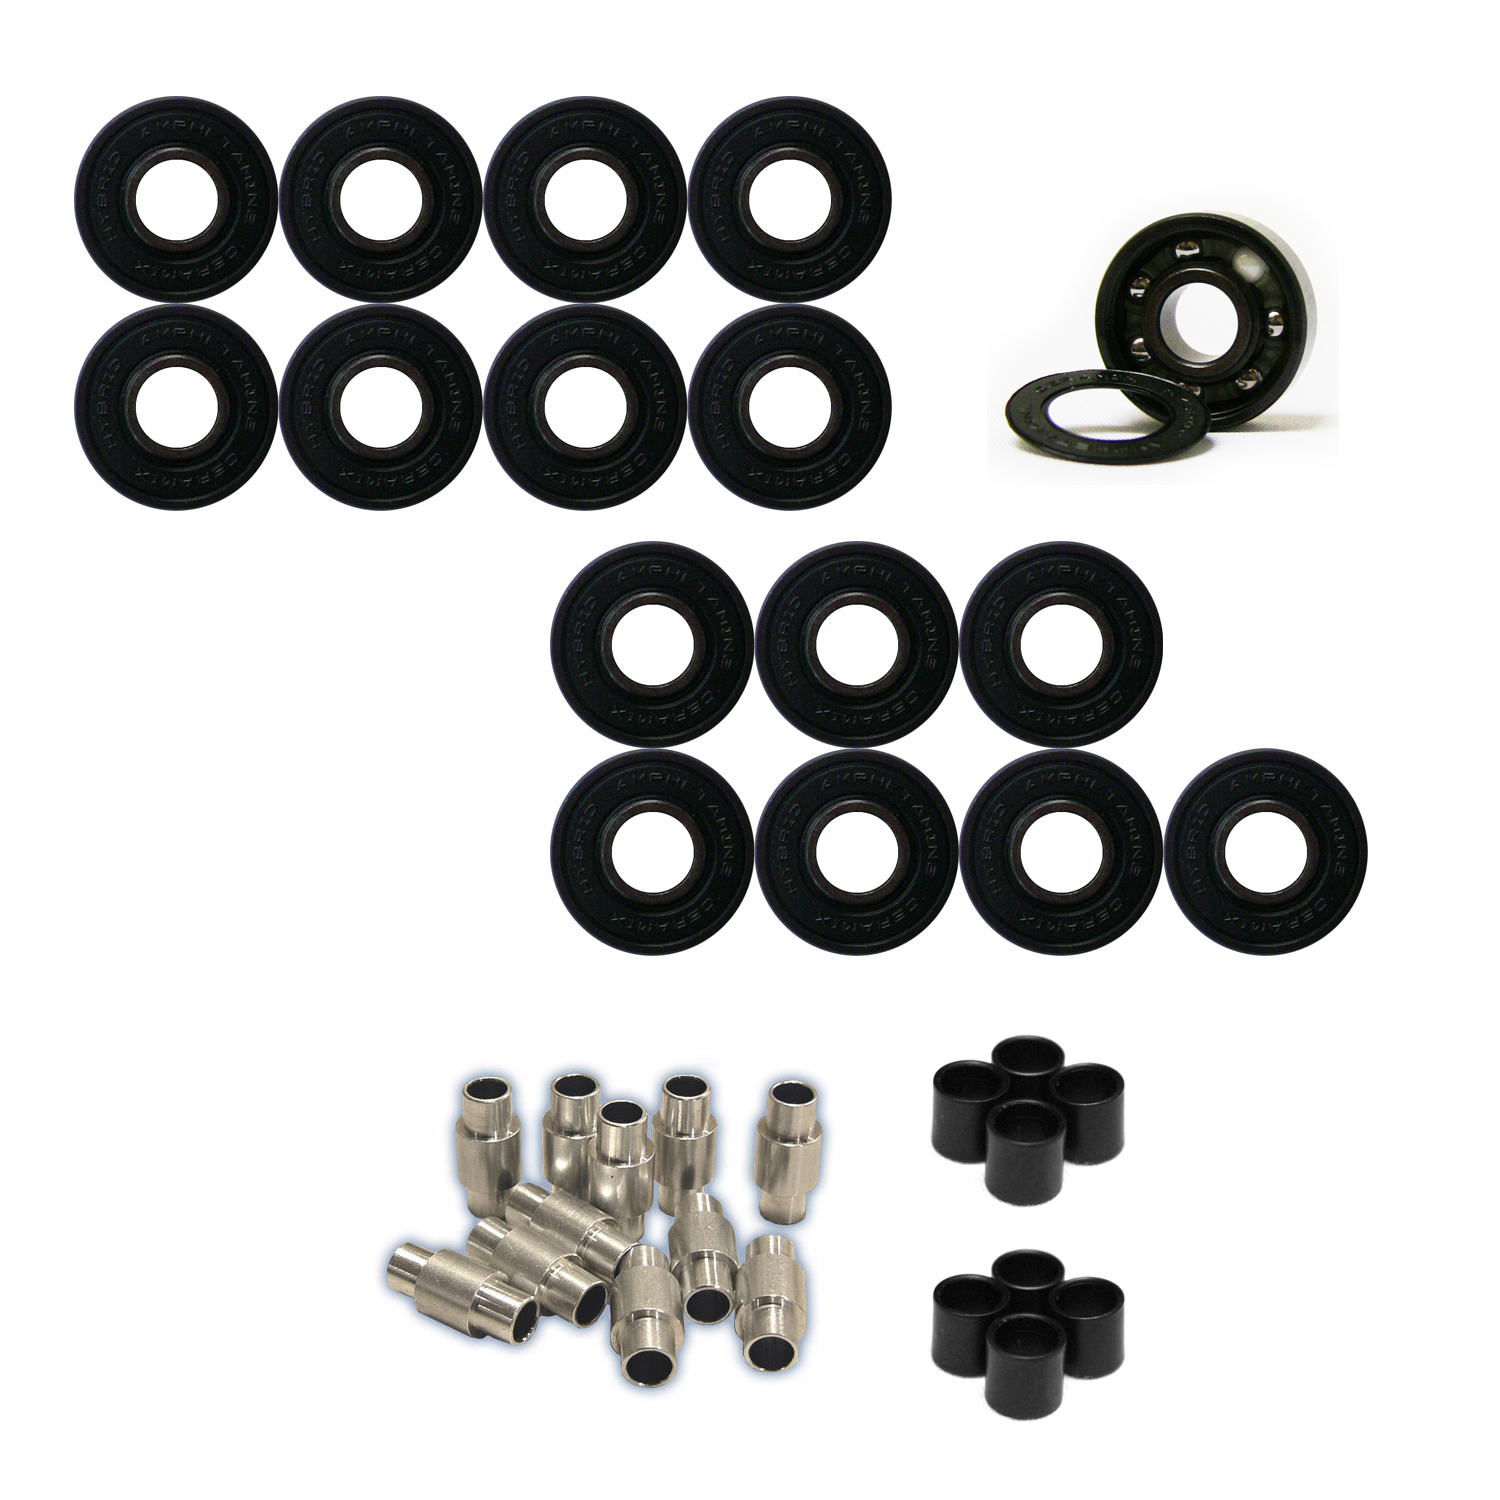 AMPHETAMINE Roller Hockey Bearings Inline Skate SPEED KIT Ceramic Hybrid by Amphetamine